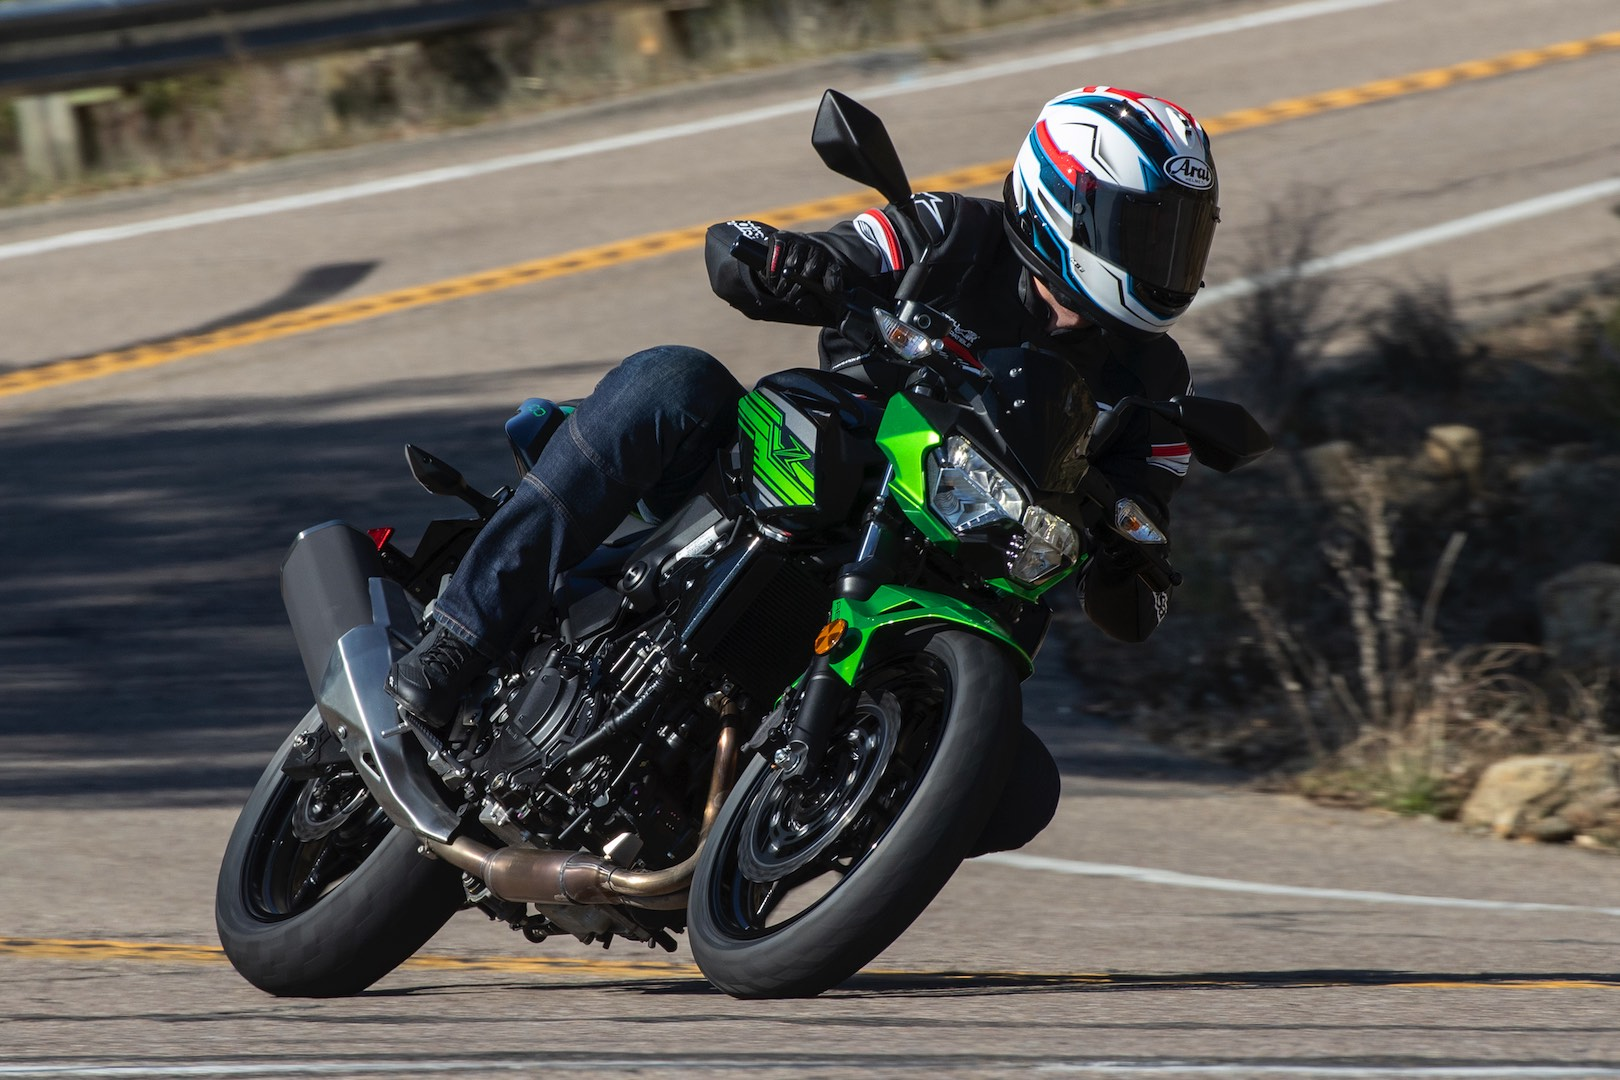 2019 Kawasaki Z400 ABS Review